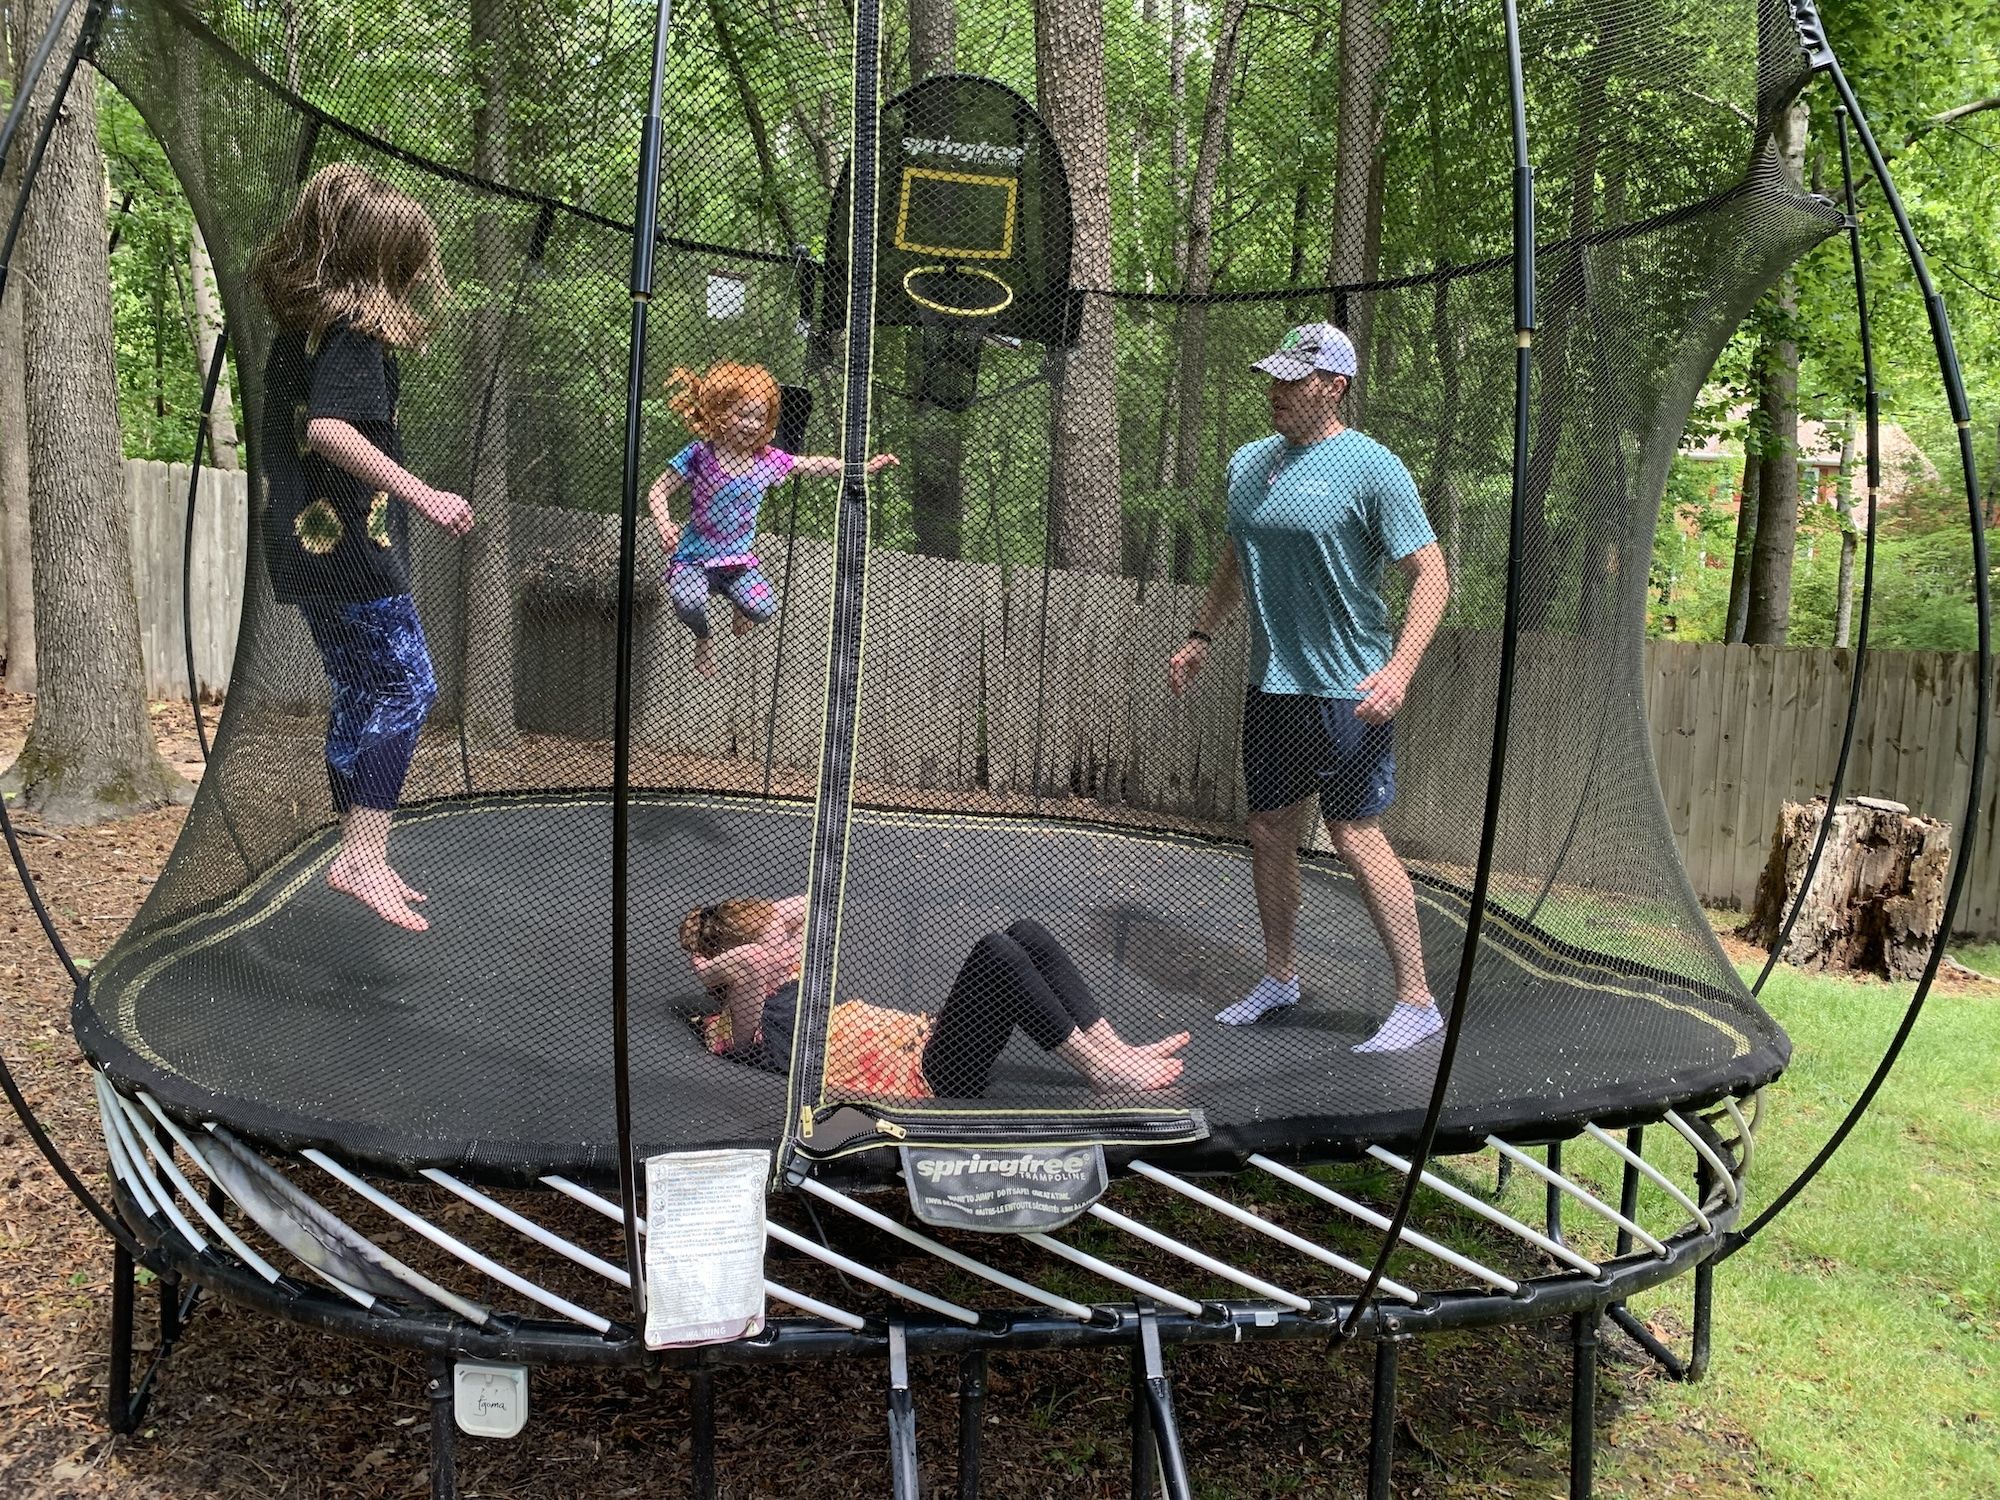 playing on the trampoline